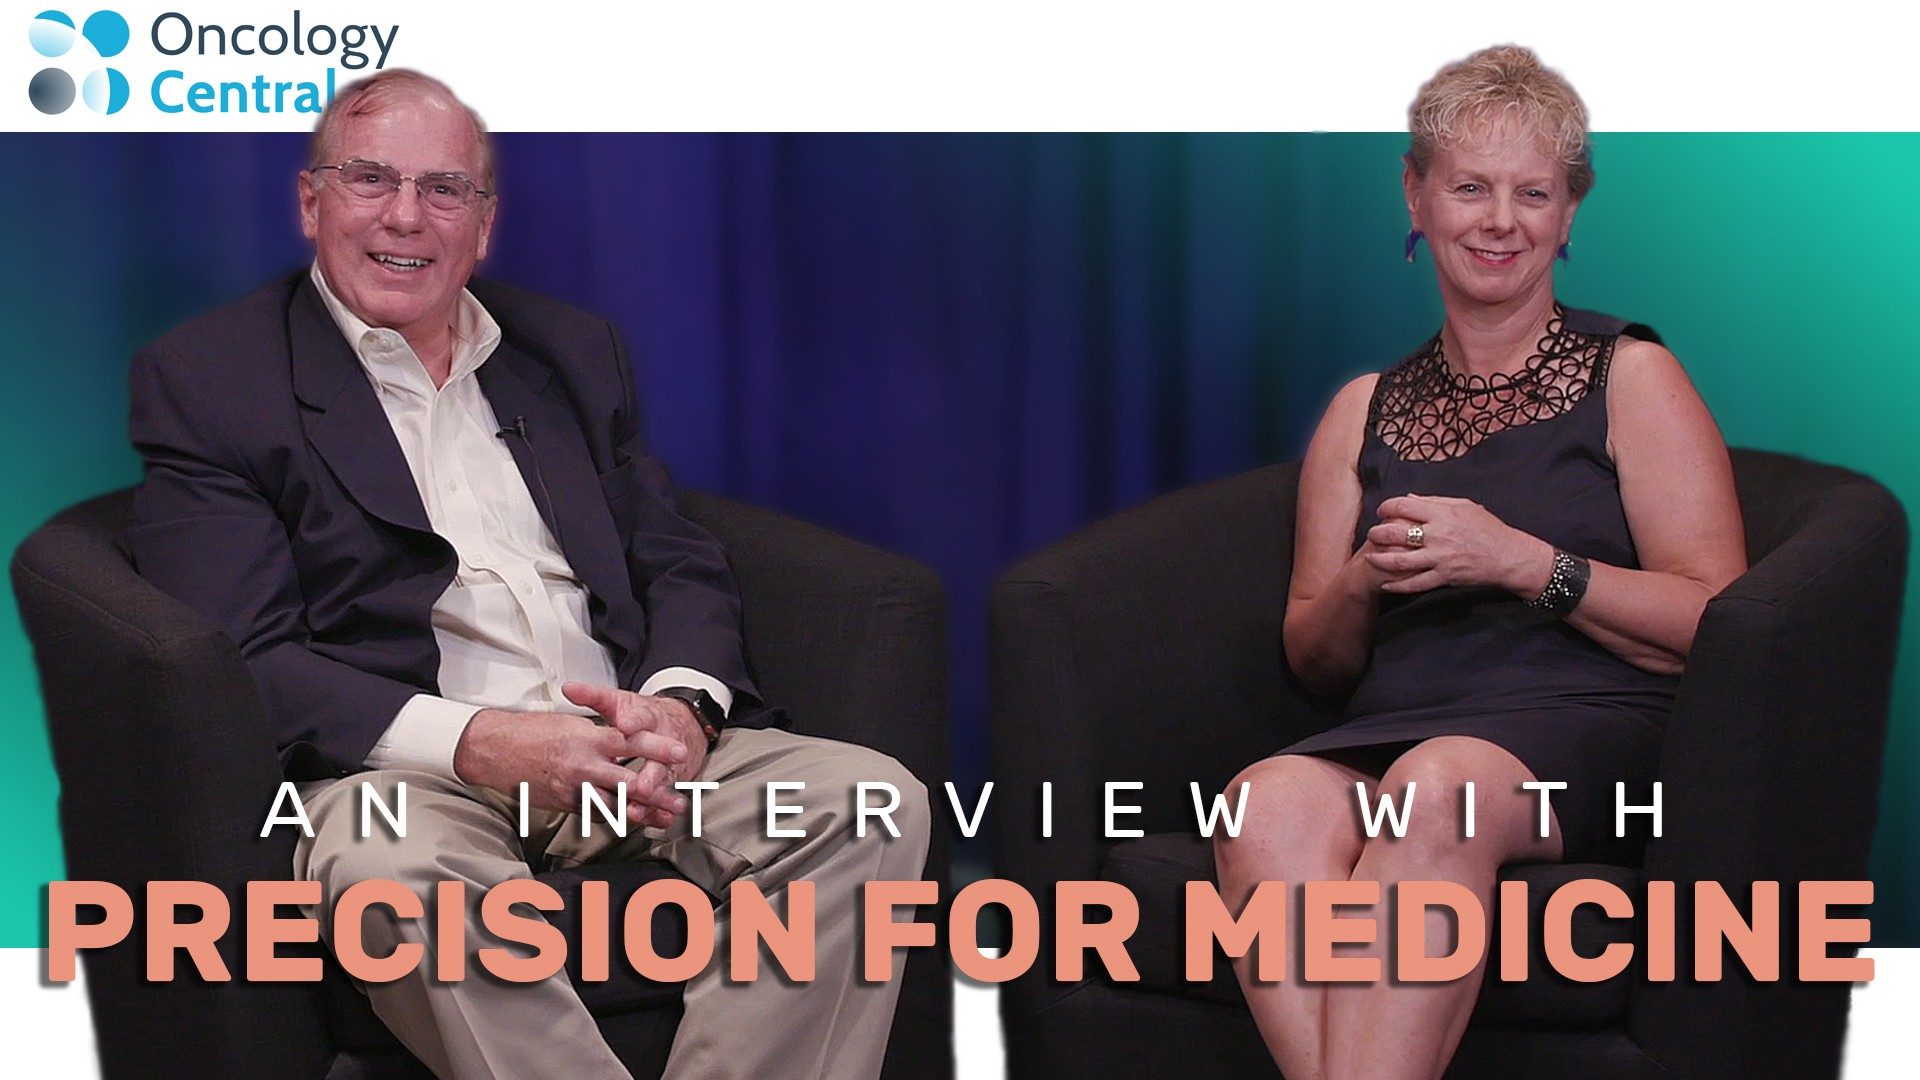 The integration of biomarkers into the drug development process is an area of growing interest. In this interview we speak with Gerald Messerschmidt and Deborah Phippard from Precision for Medicine (USA) about the biomarker capabilities of Precision for Medicine as well as how integrating biomarkers with clinical trials can aid precise patient and medication selection. This content is sponsored by Precision for Medicine.